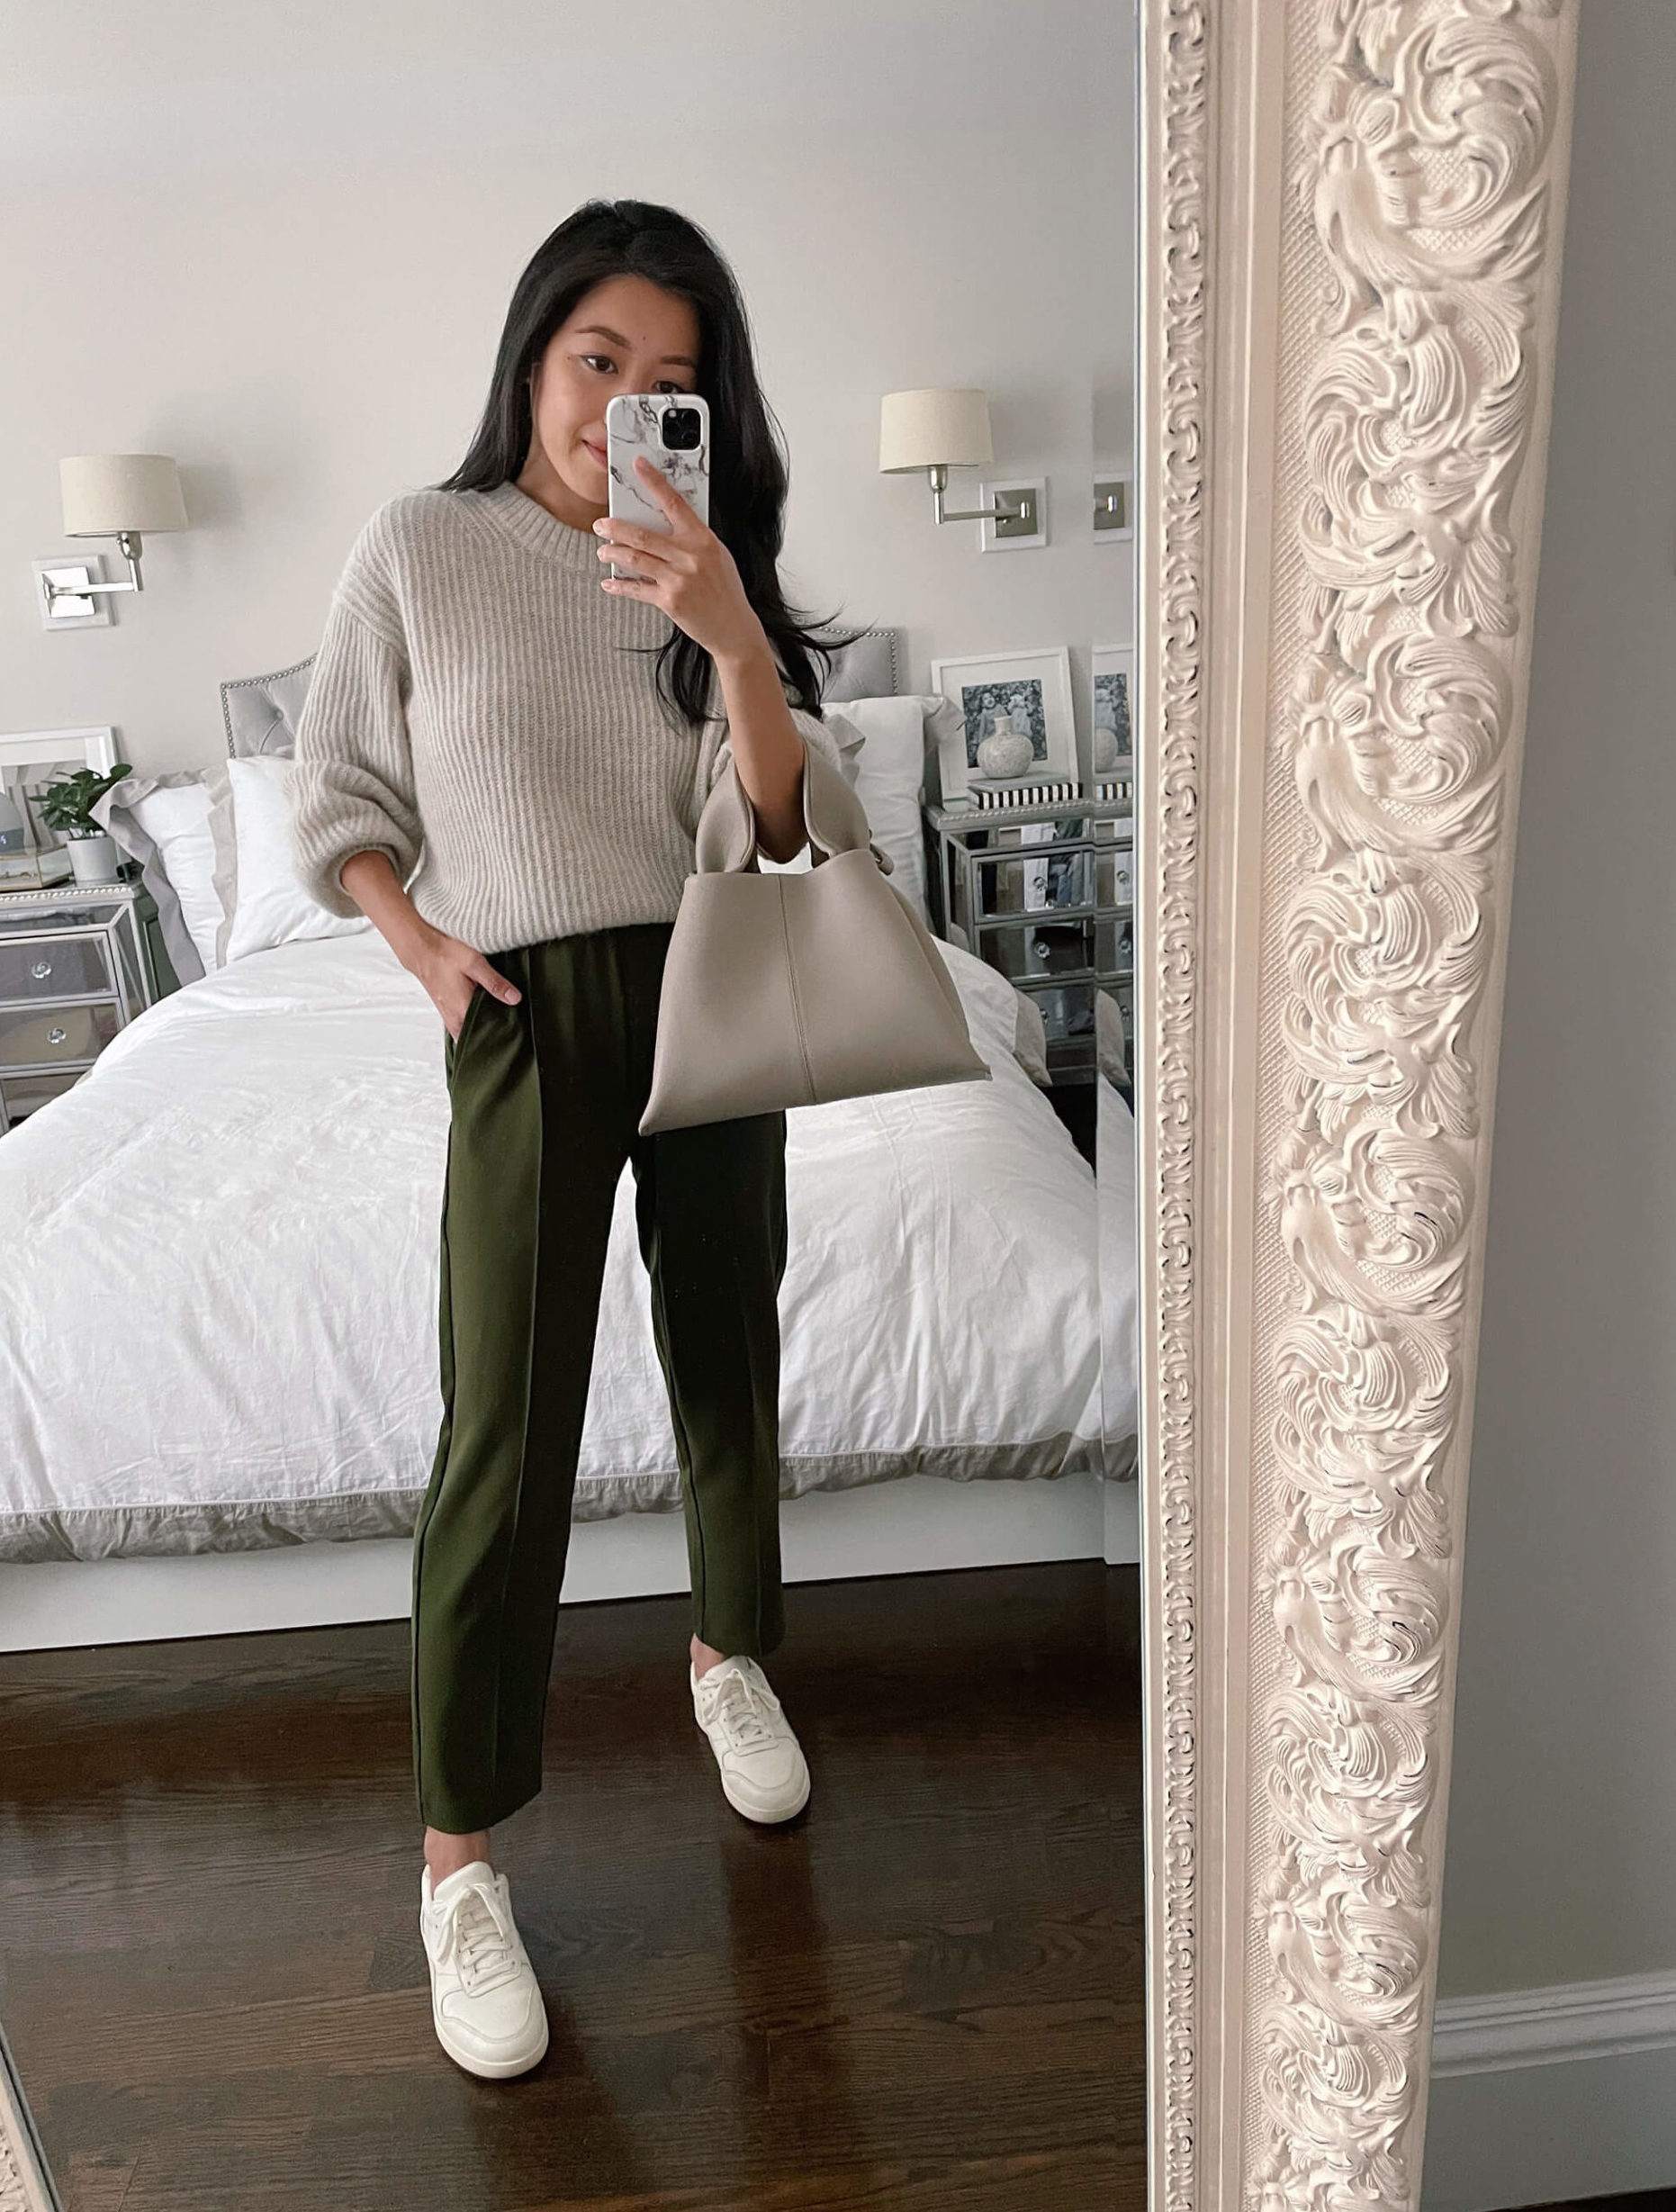 everlane court sneakers review petite